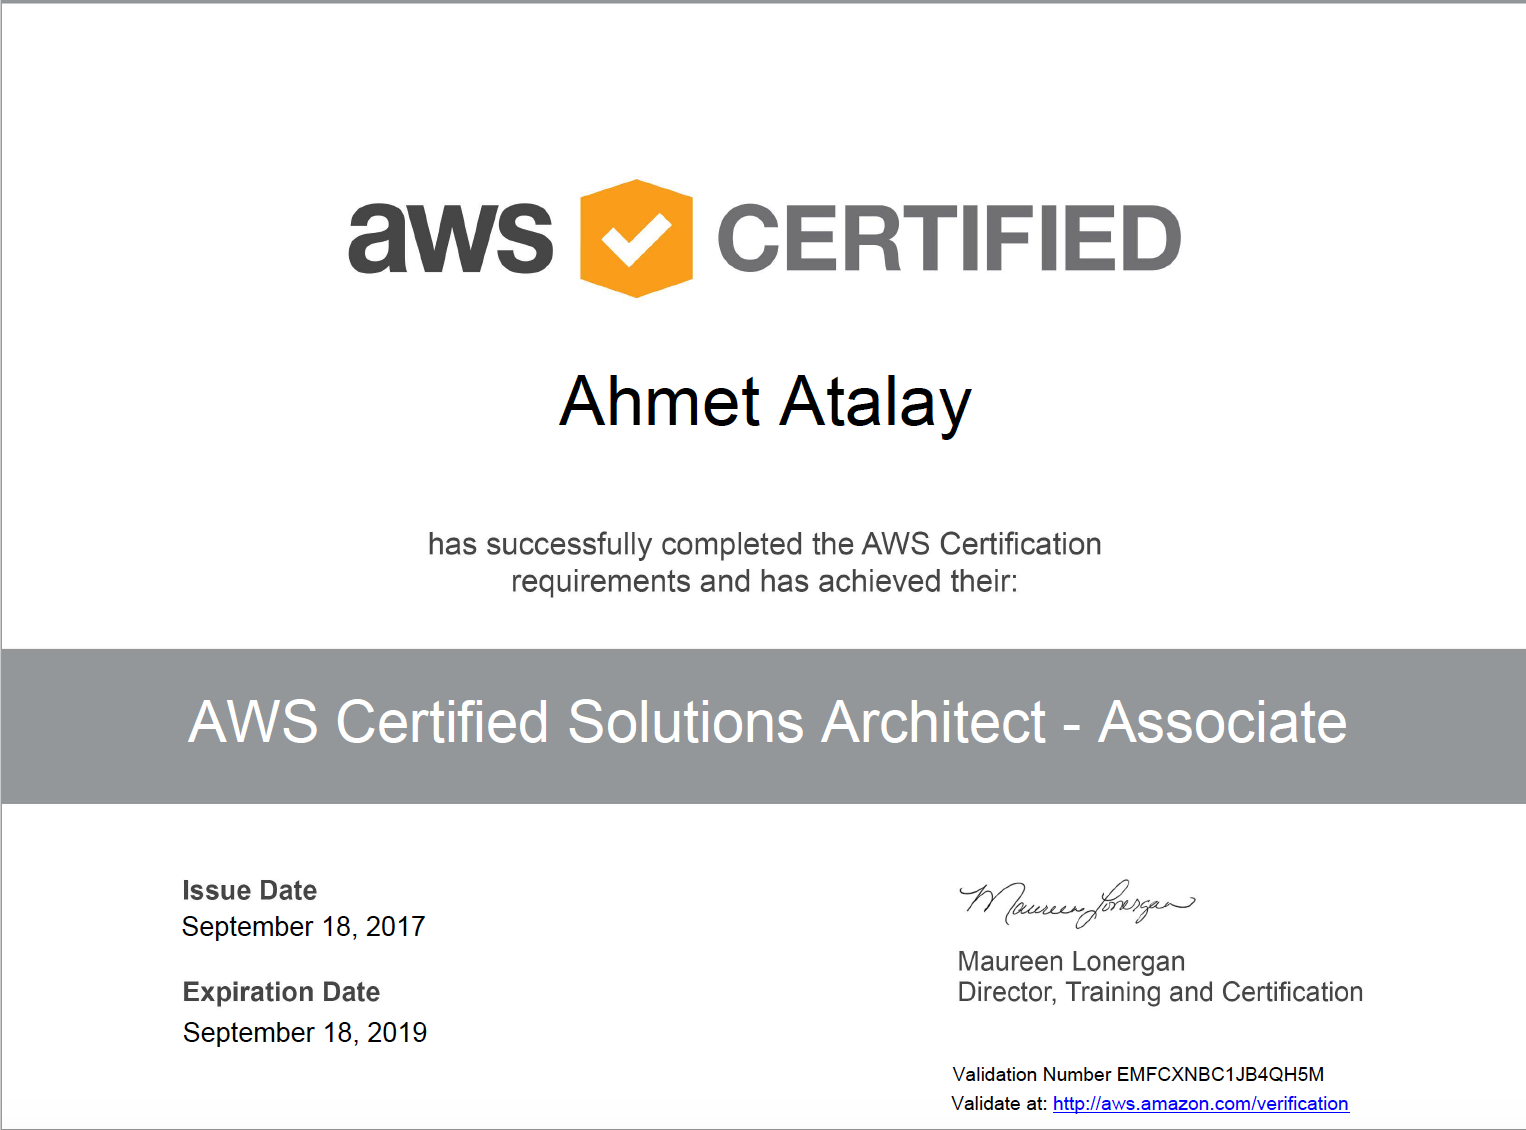 How I Studied For The Aws Certified Solution Architect Associate Exam